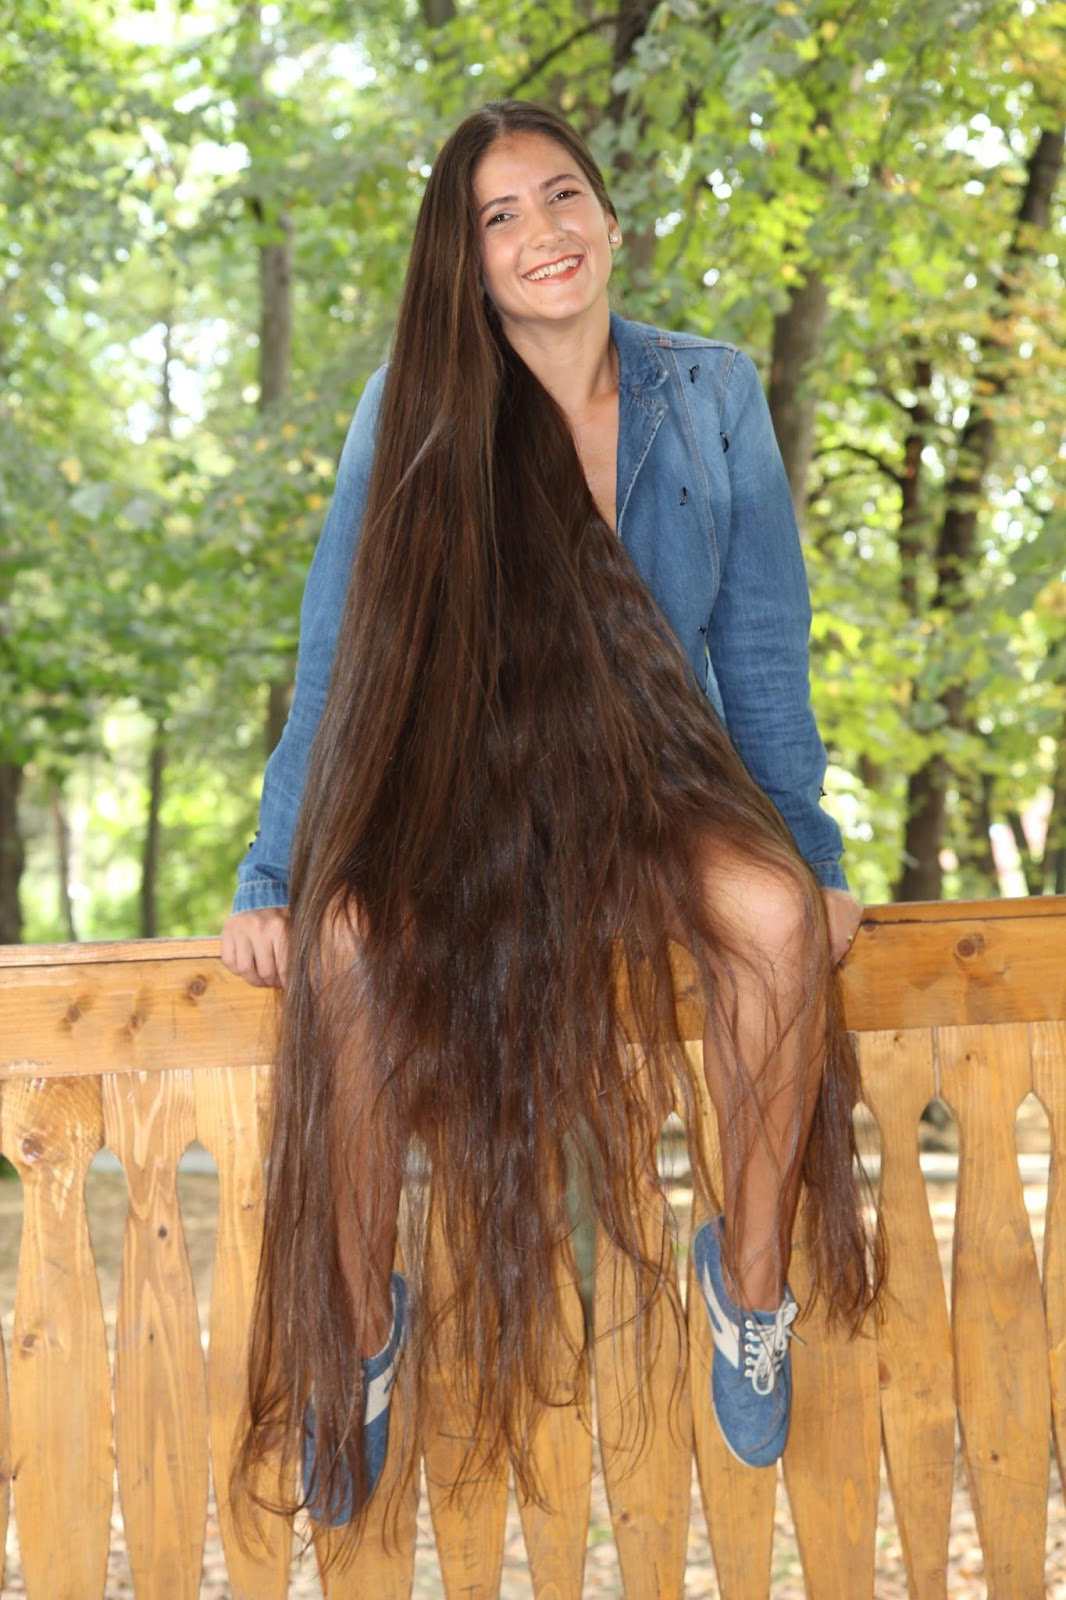 long hair girl sitting on walls for combing.